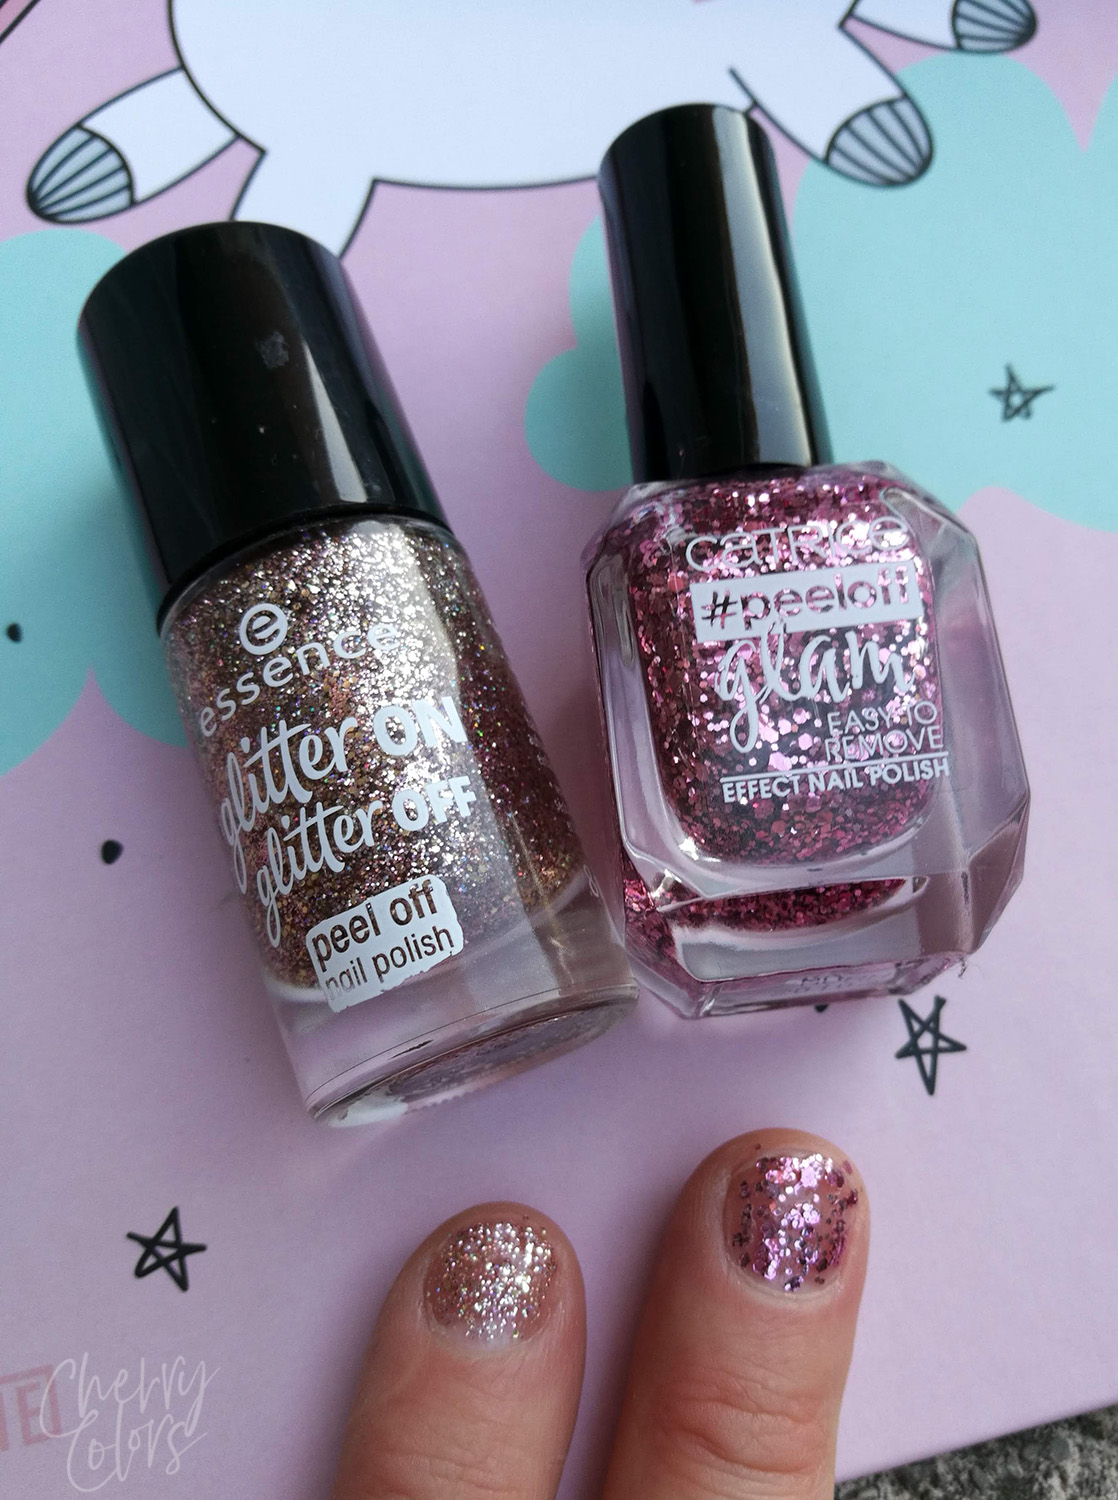 ESSENCE & CATRICE GLITTER PEEL OFF NAIL POLISH